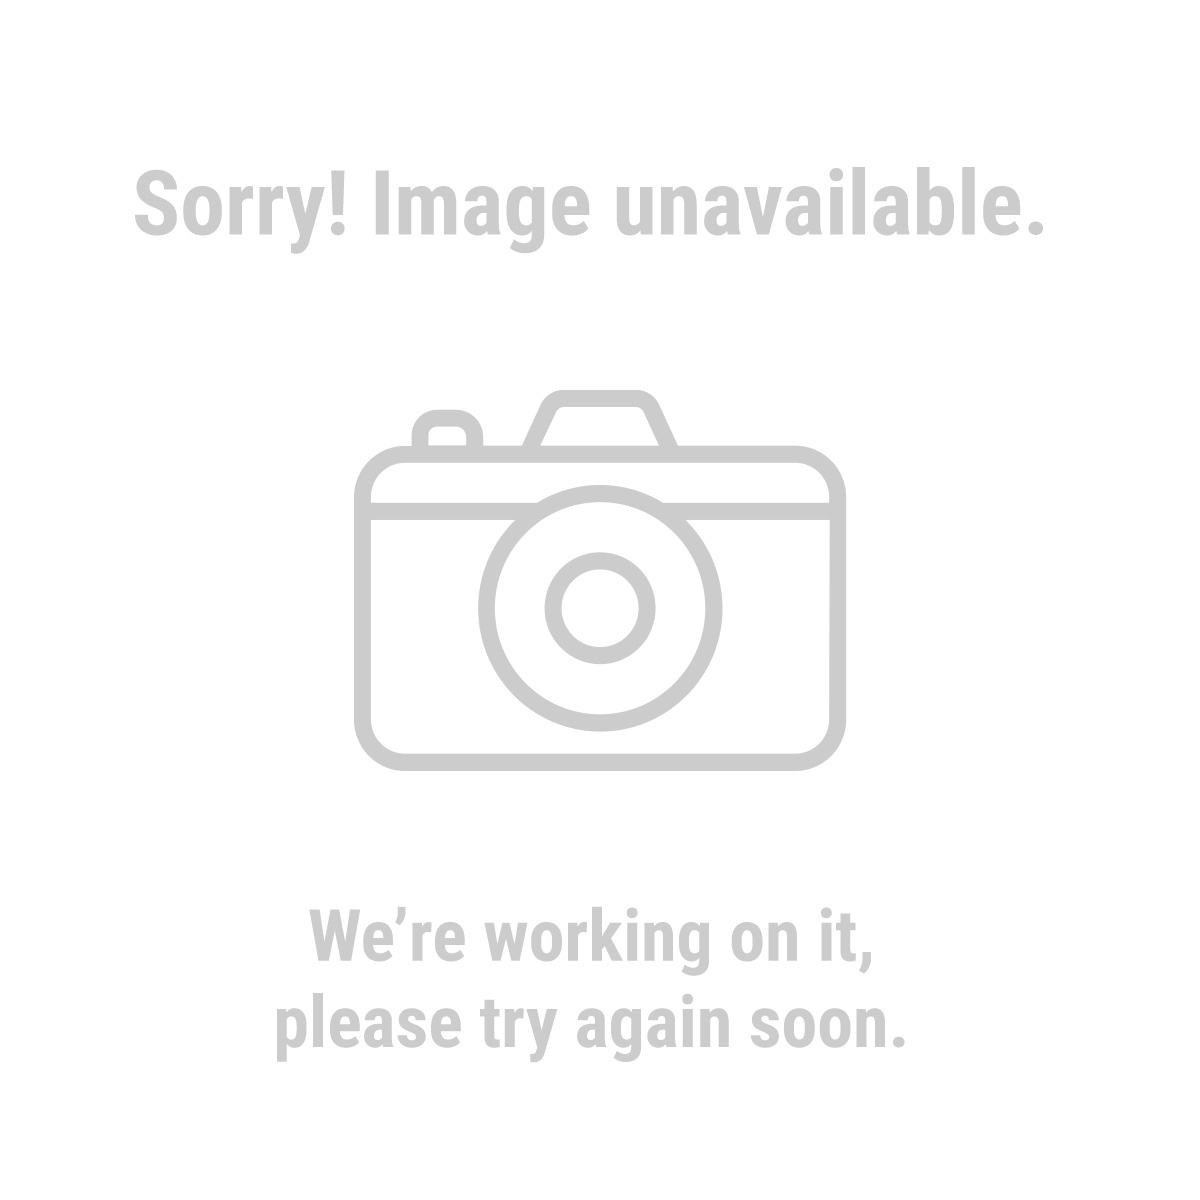 Pittsburgh® 62461 25 ft. x 1 in. QuikFind Tape Measure